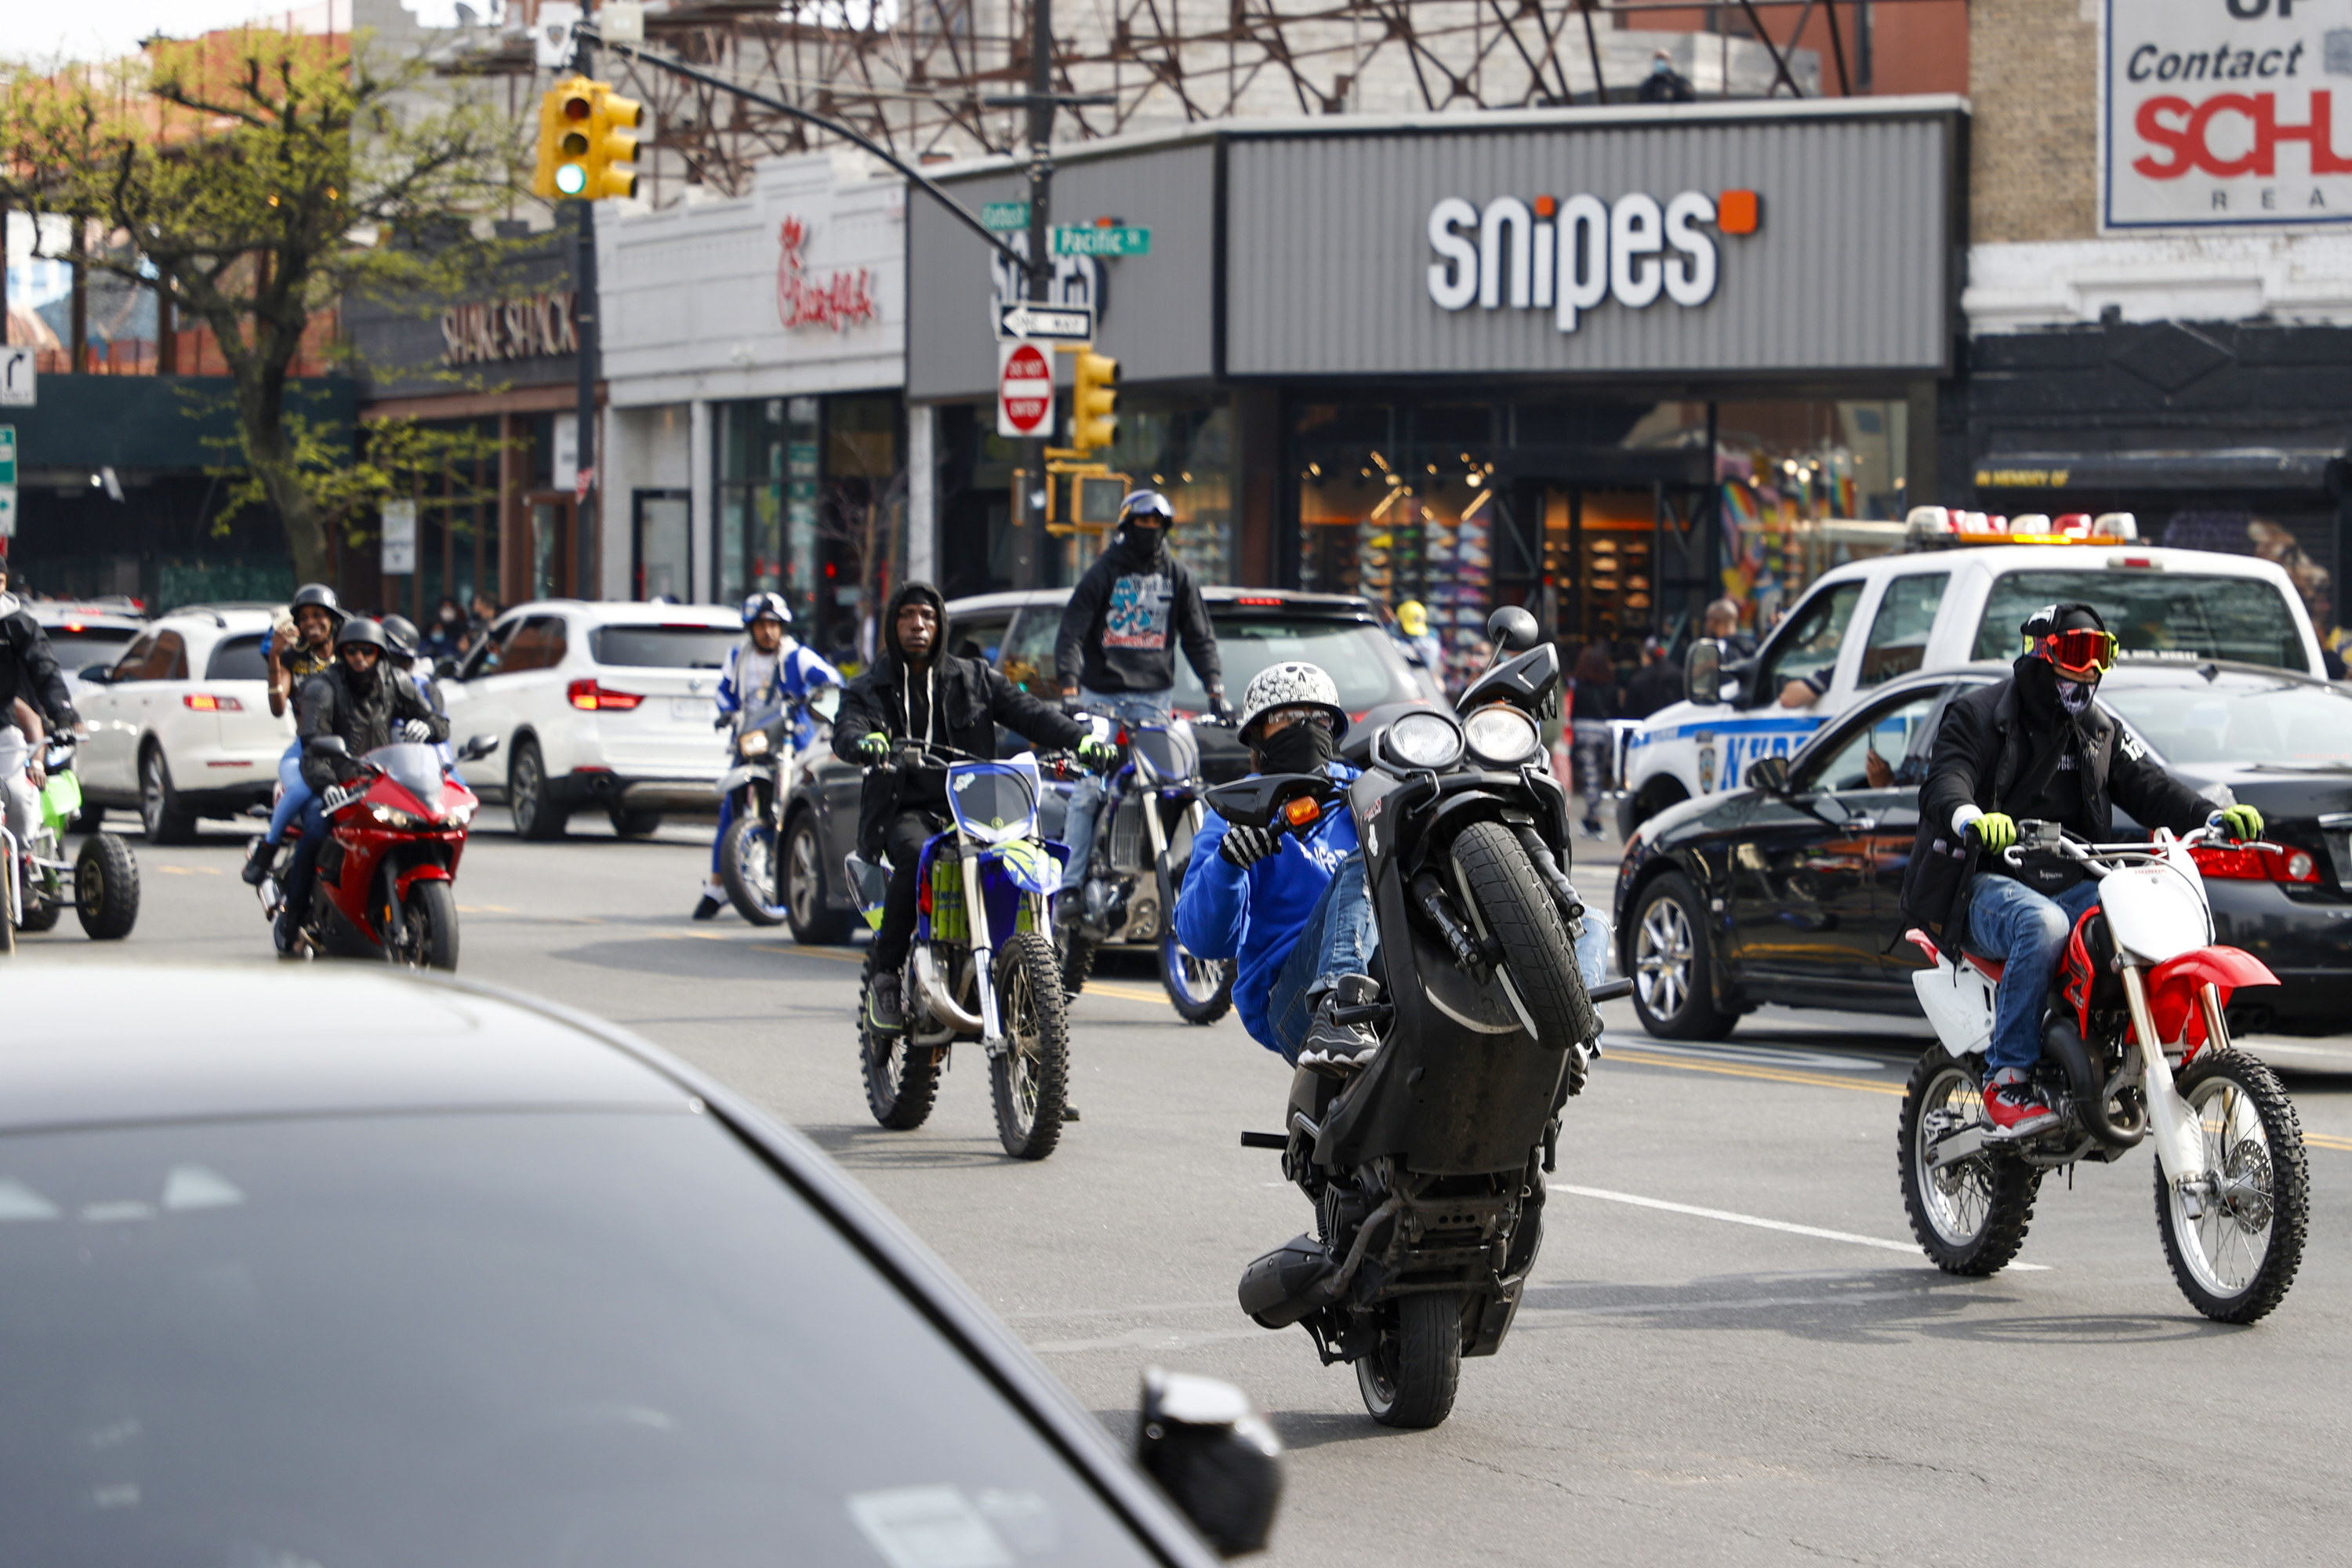 One motorcyclist does a wheelie on the streets of Brooklyn